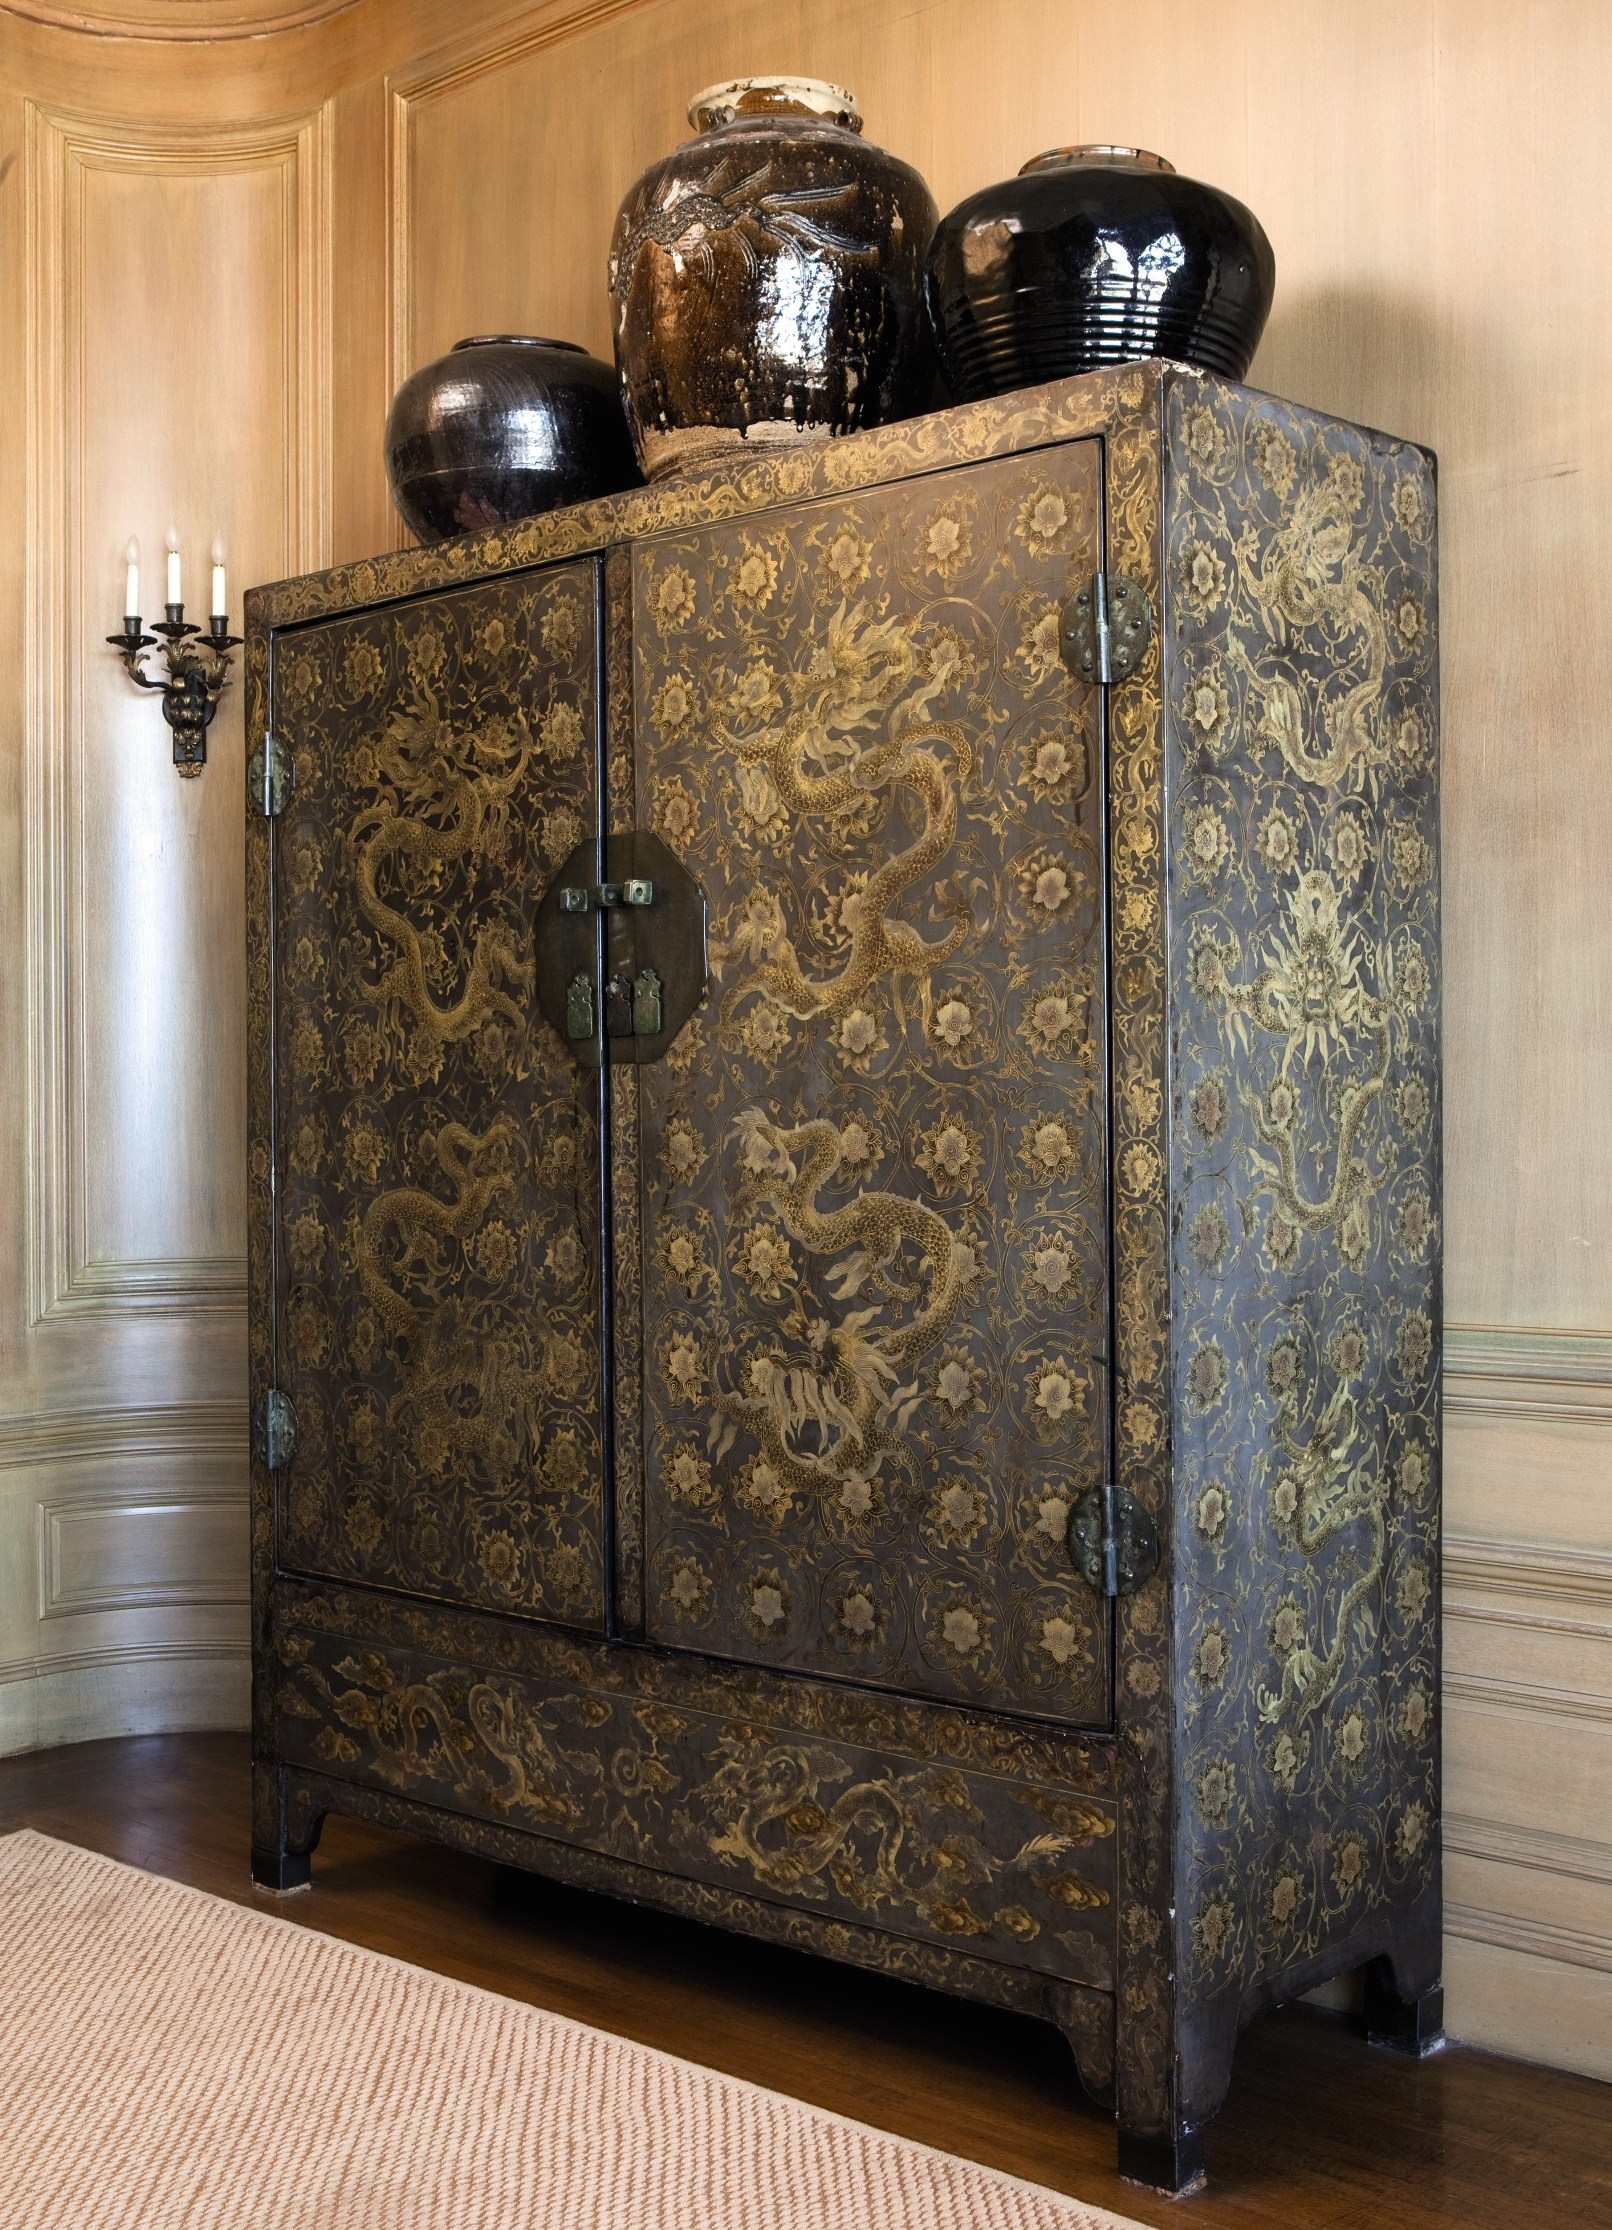 2011-12-05-8818Lot50LargechineseBrownLacquerCabinet.jpg